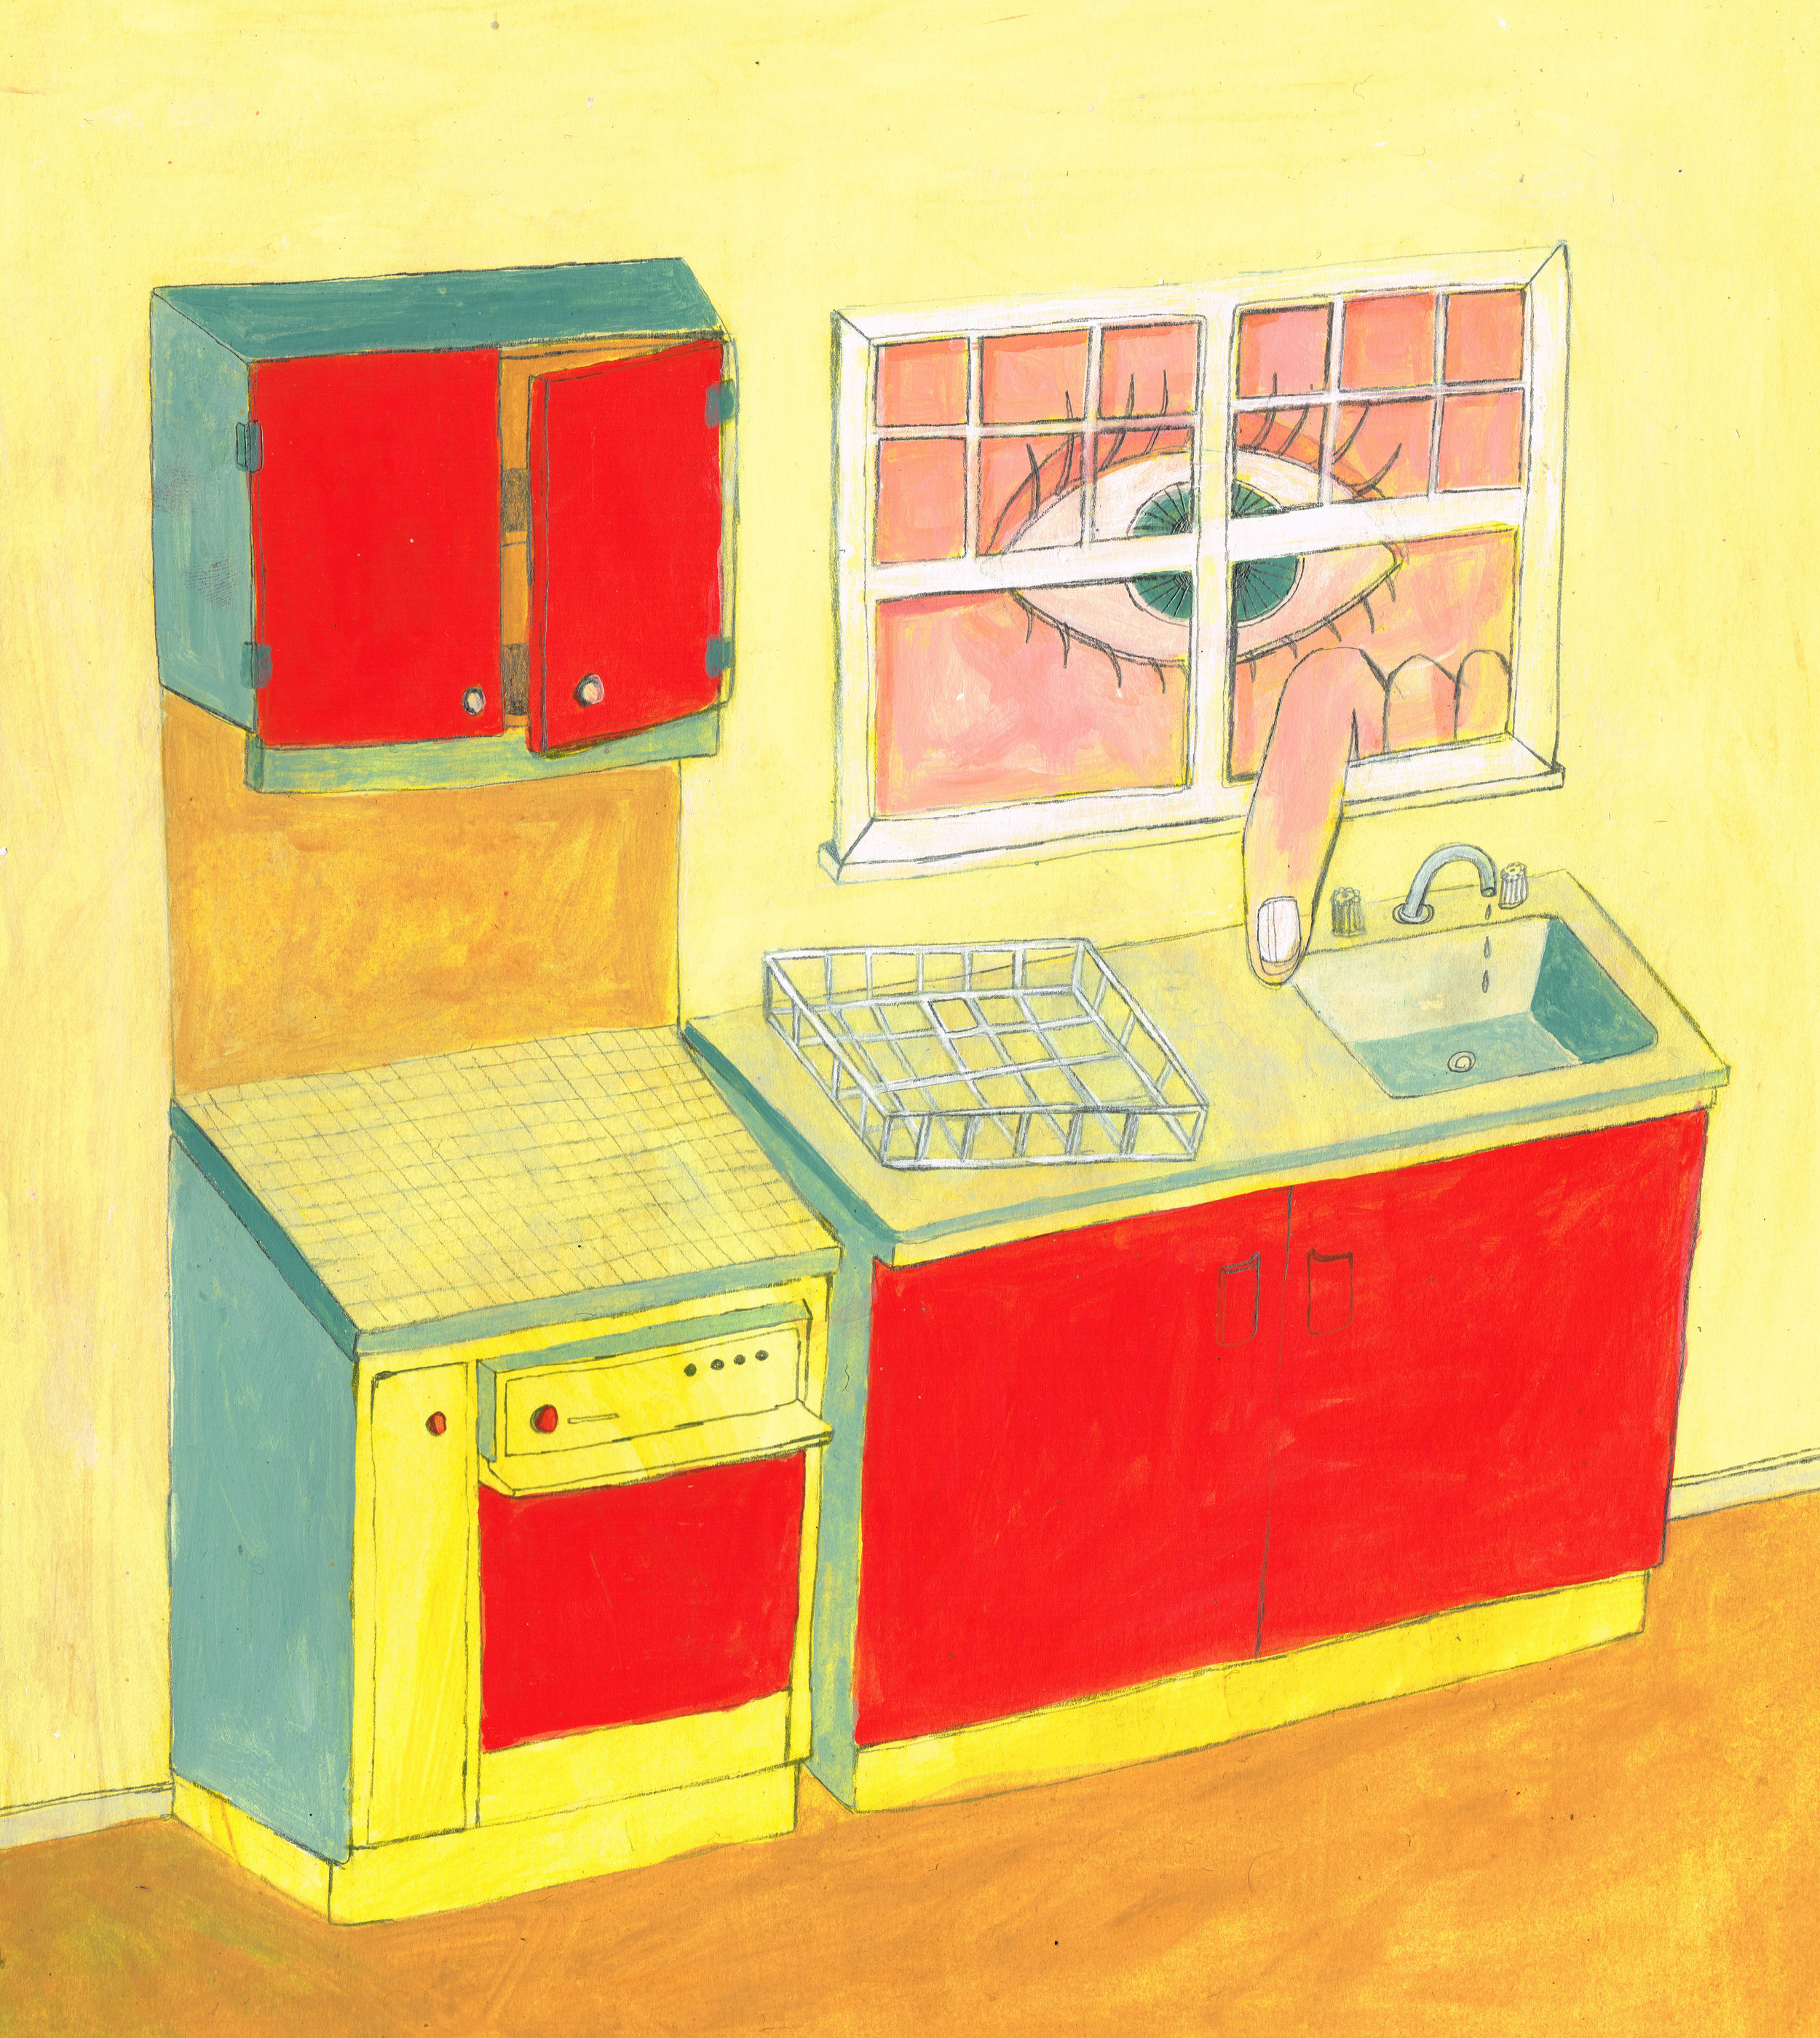 dollhouse kitchen apitning  2019.jpg